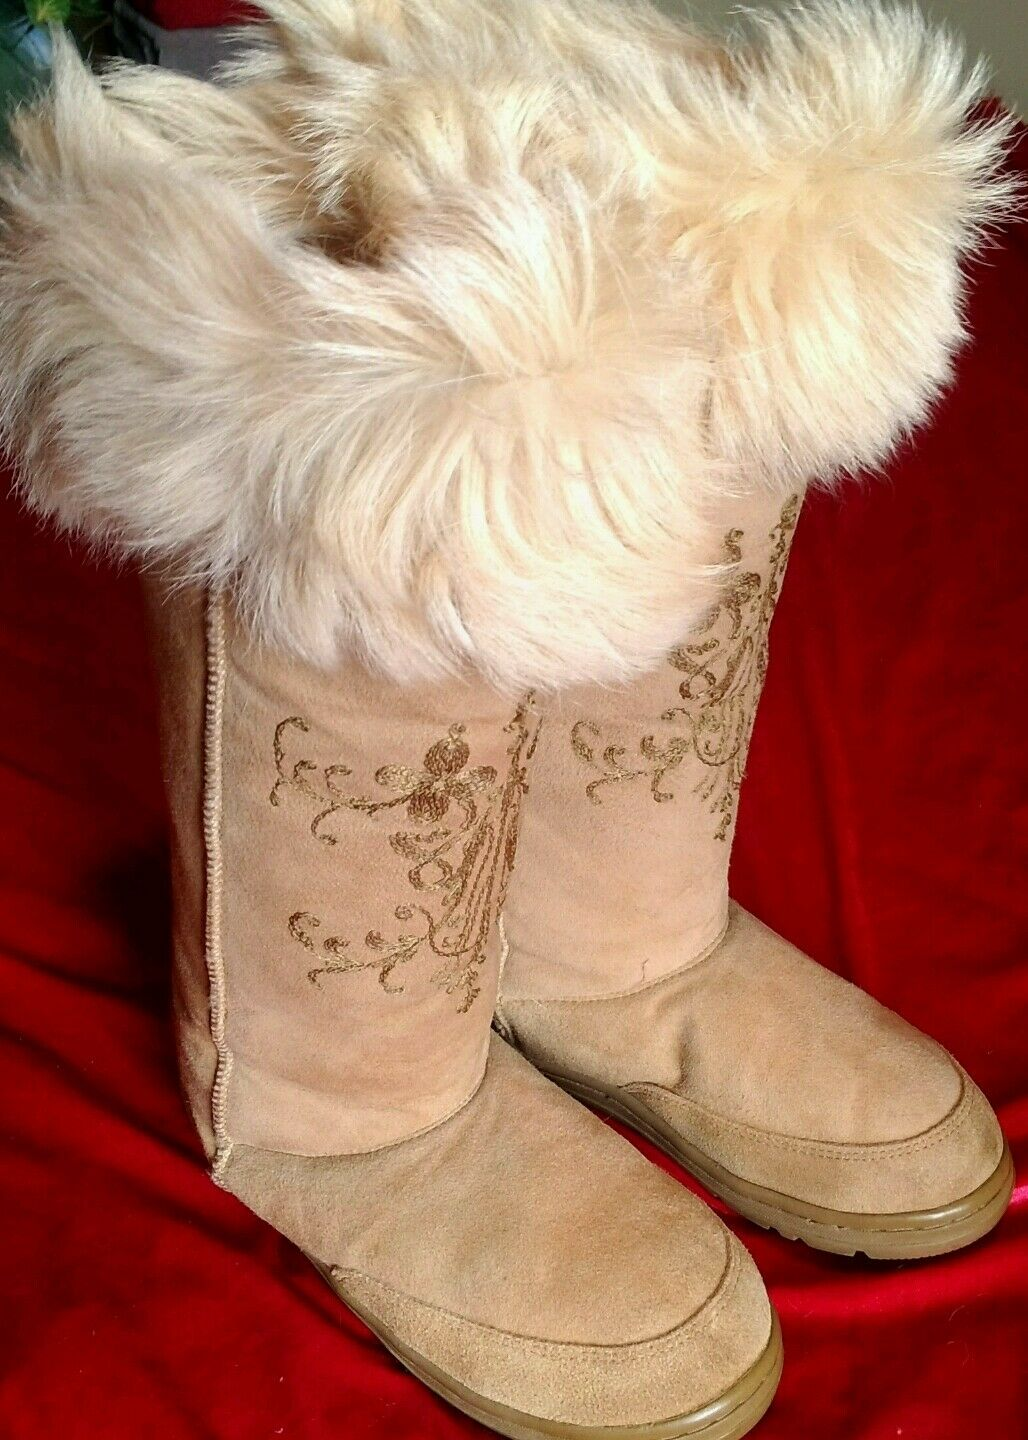 J Crew Damenschuhe  Tan Suede Leder EmbroideROT Faux Fur Tall Stiefel 9